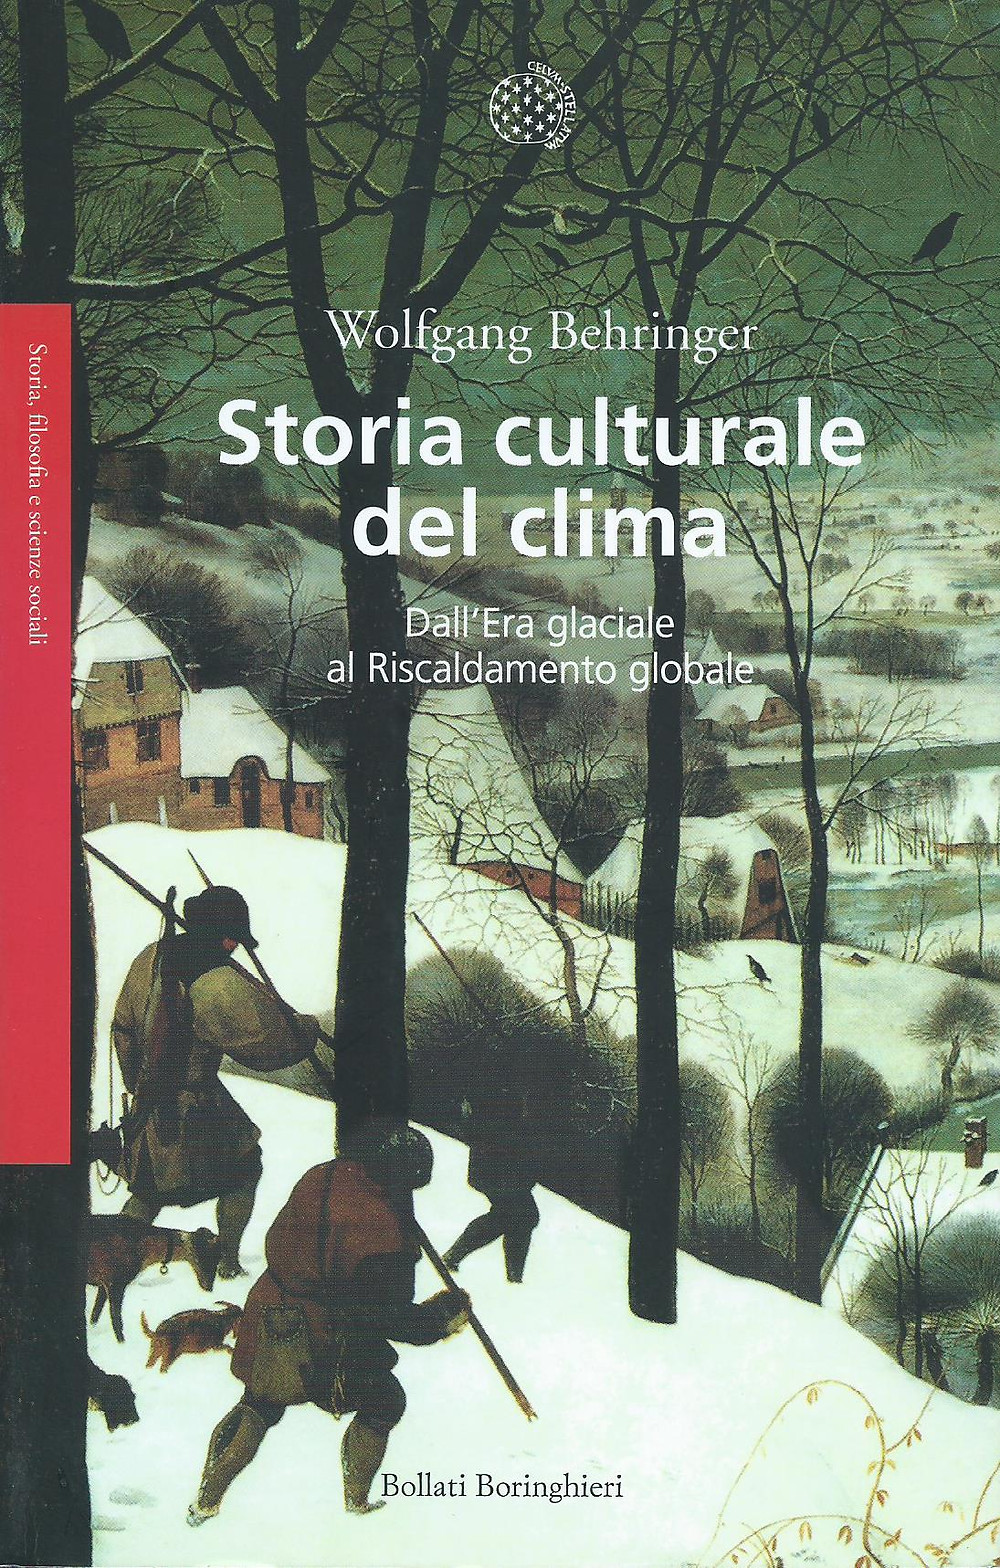 Wolfgang Behringer, Storia culturale del clima